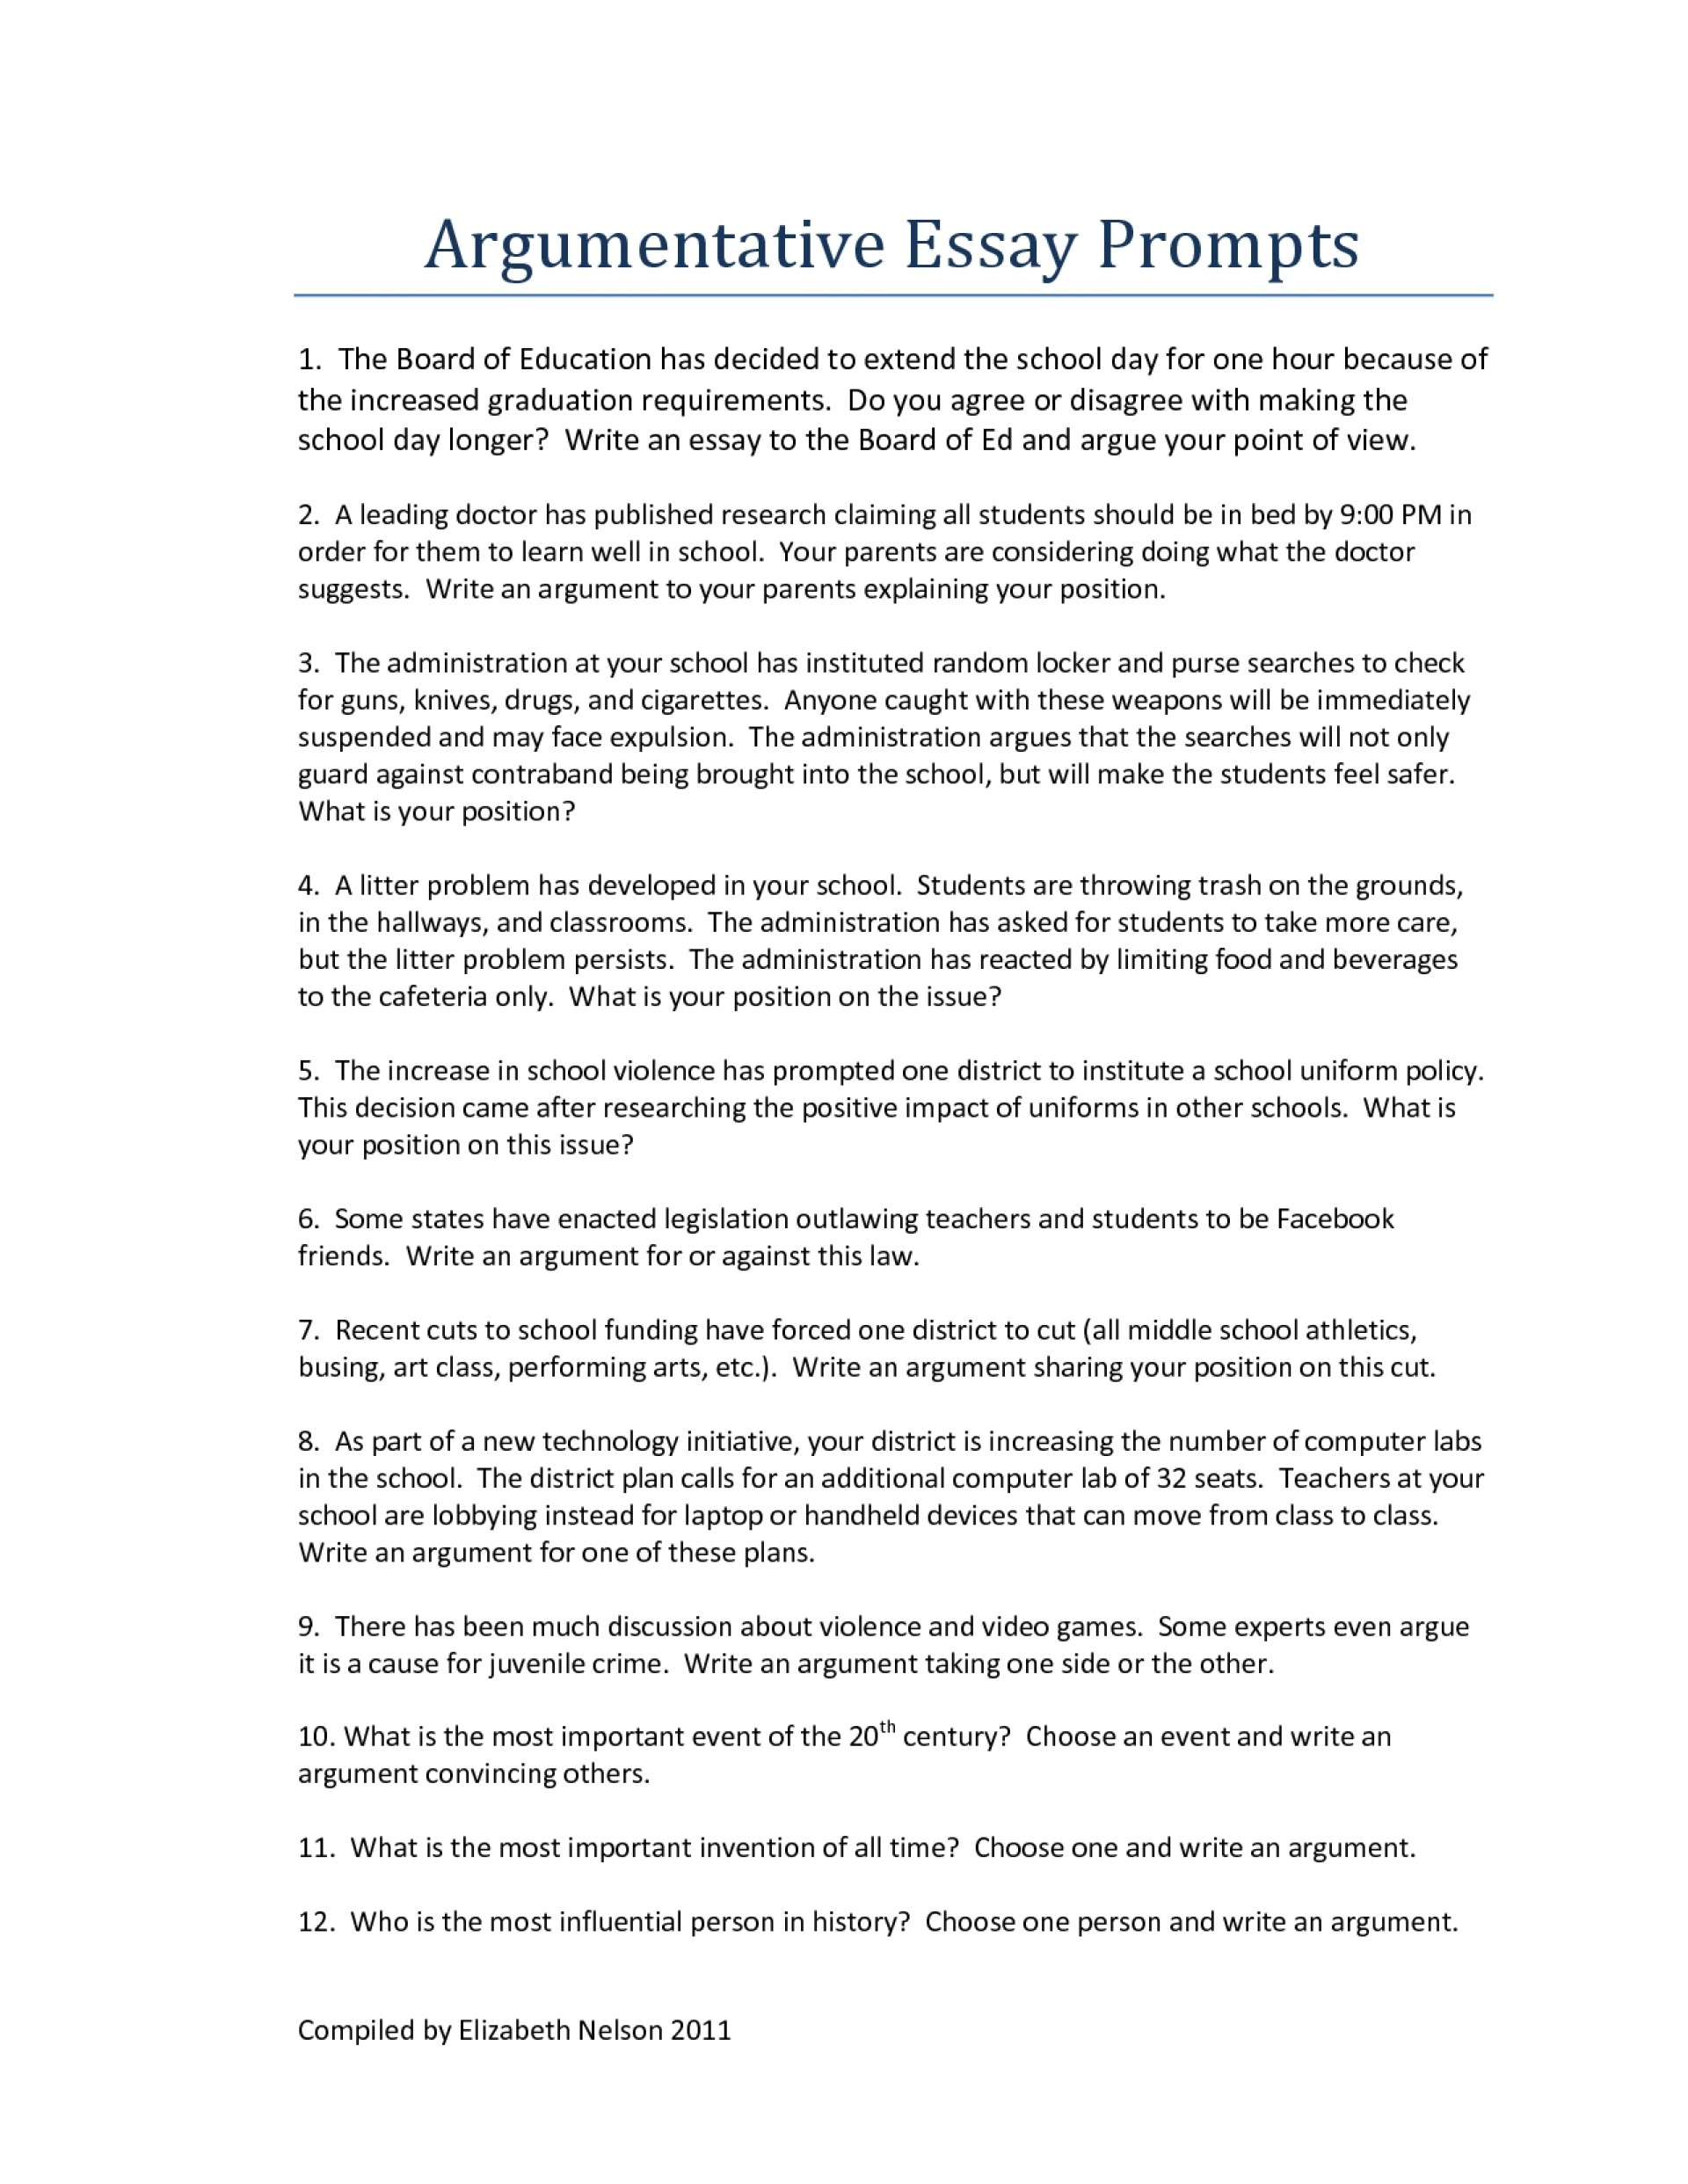 006 Persuasive Essay Topics For Middle School Argumentative Writings And Essays Easy Good High Argument Higher English 6th Grade Kids Pdf College About Imposing Prompts 1920